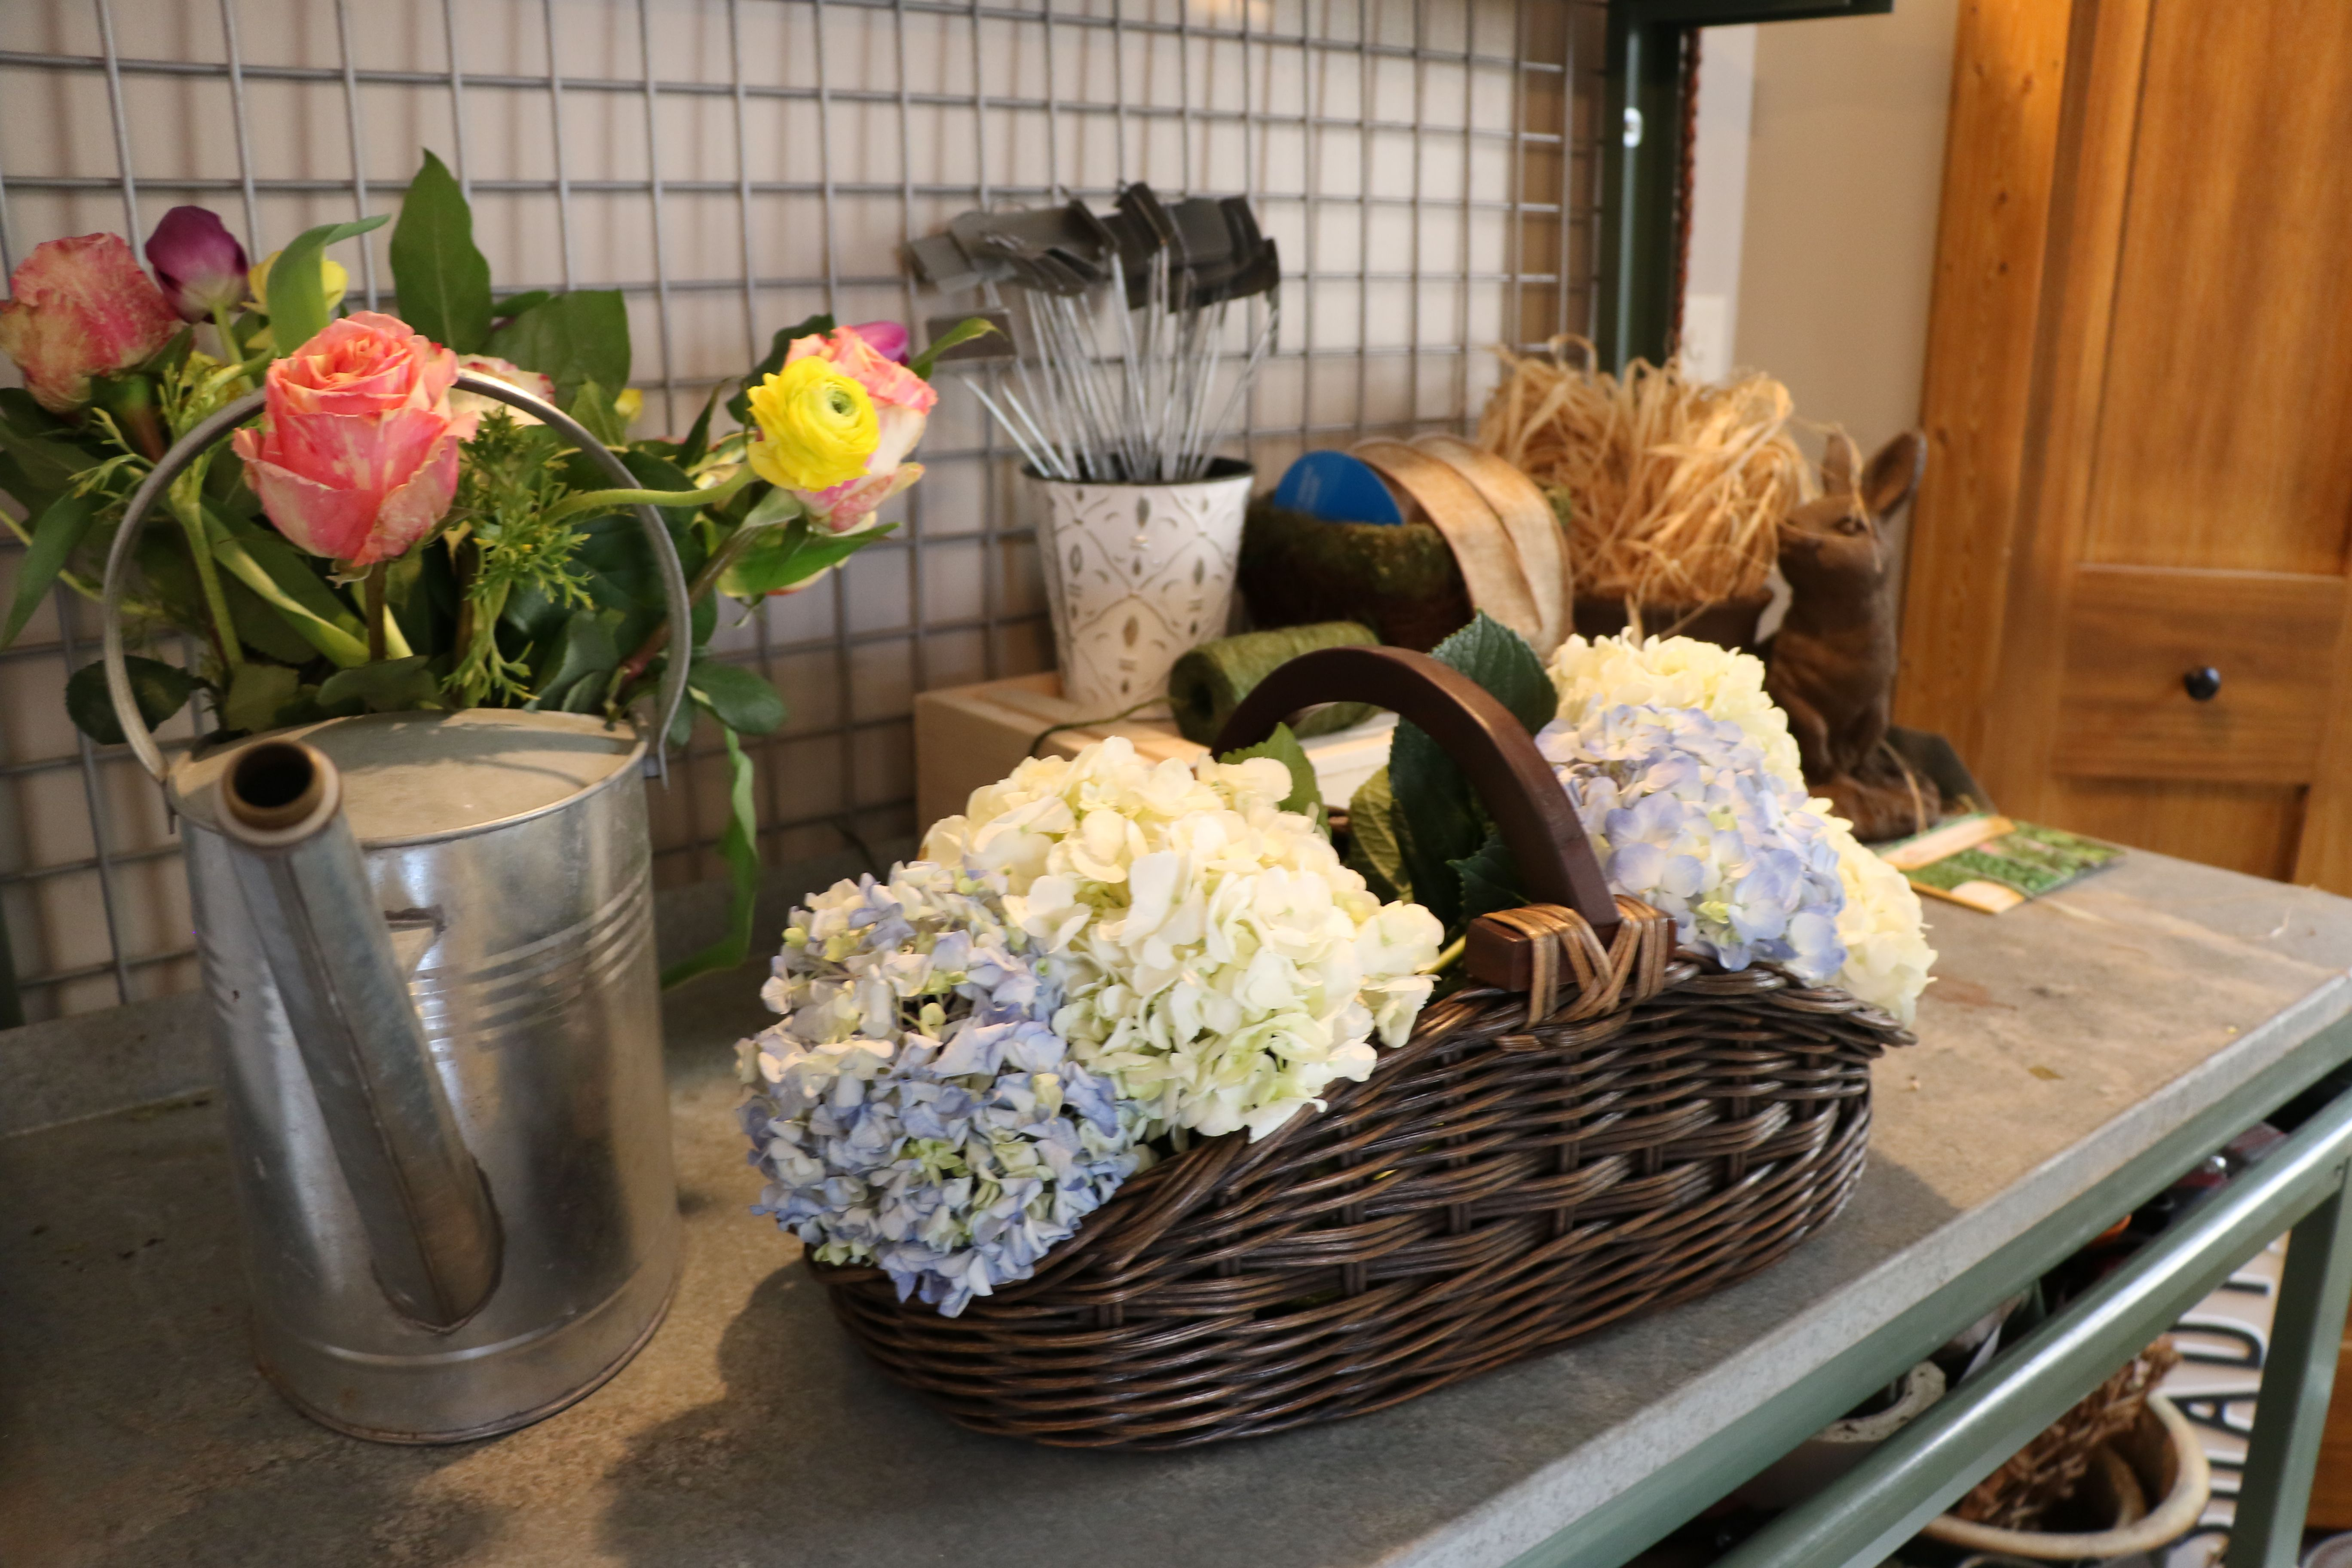 Dress up the kitchen with some fresh flowers